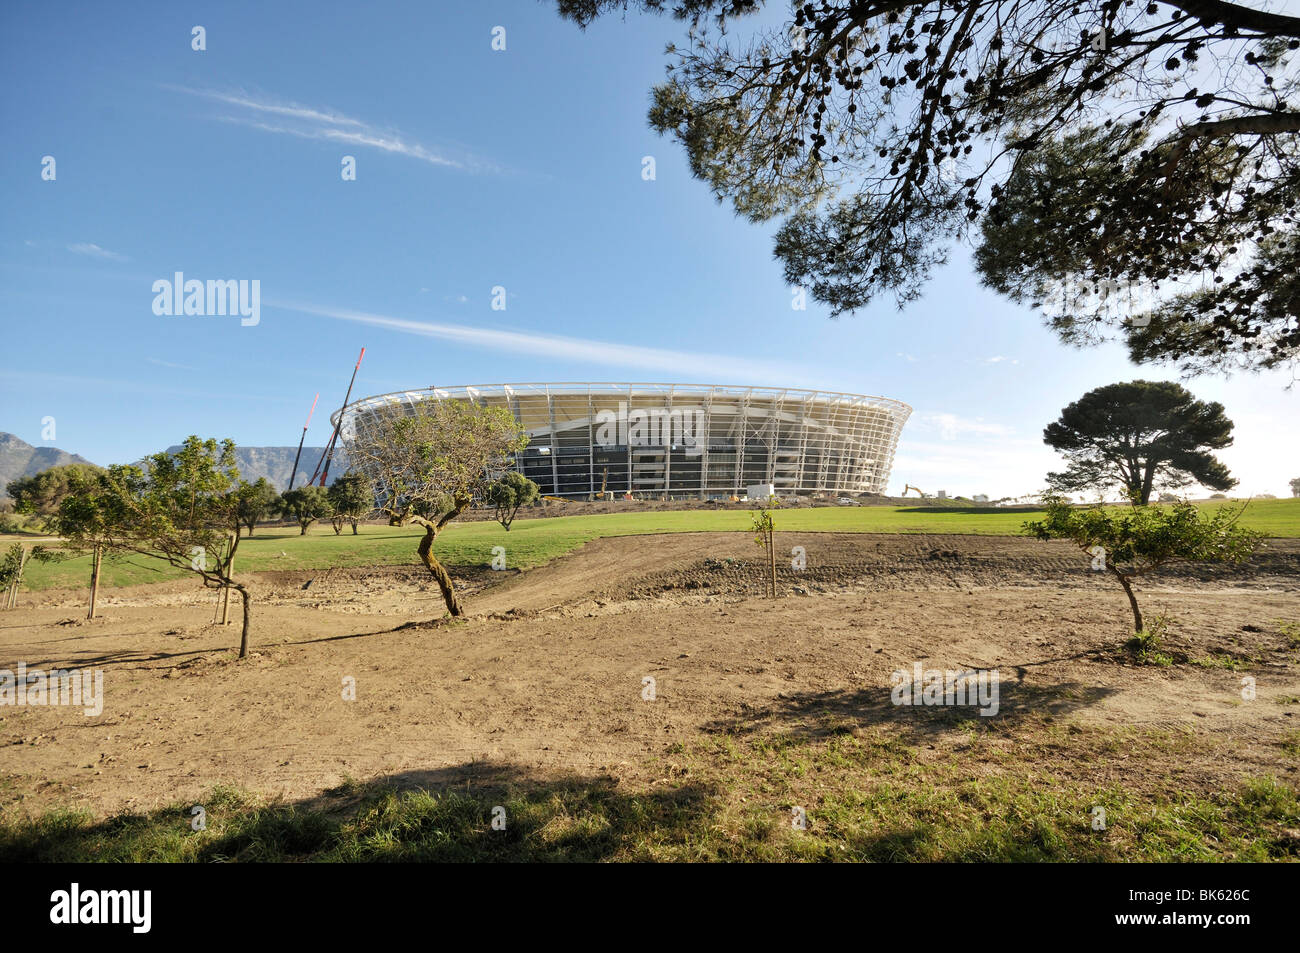 World Cup 2010, Green Point Stadium football stadium construction site, Cape Town, South Africa, Africa - Stock Image